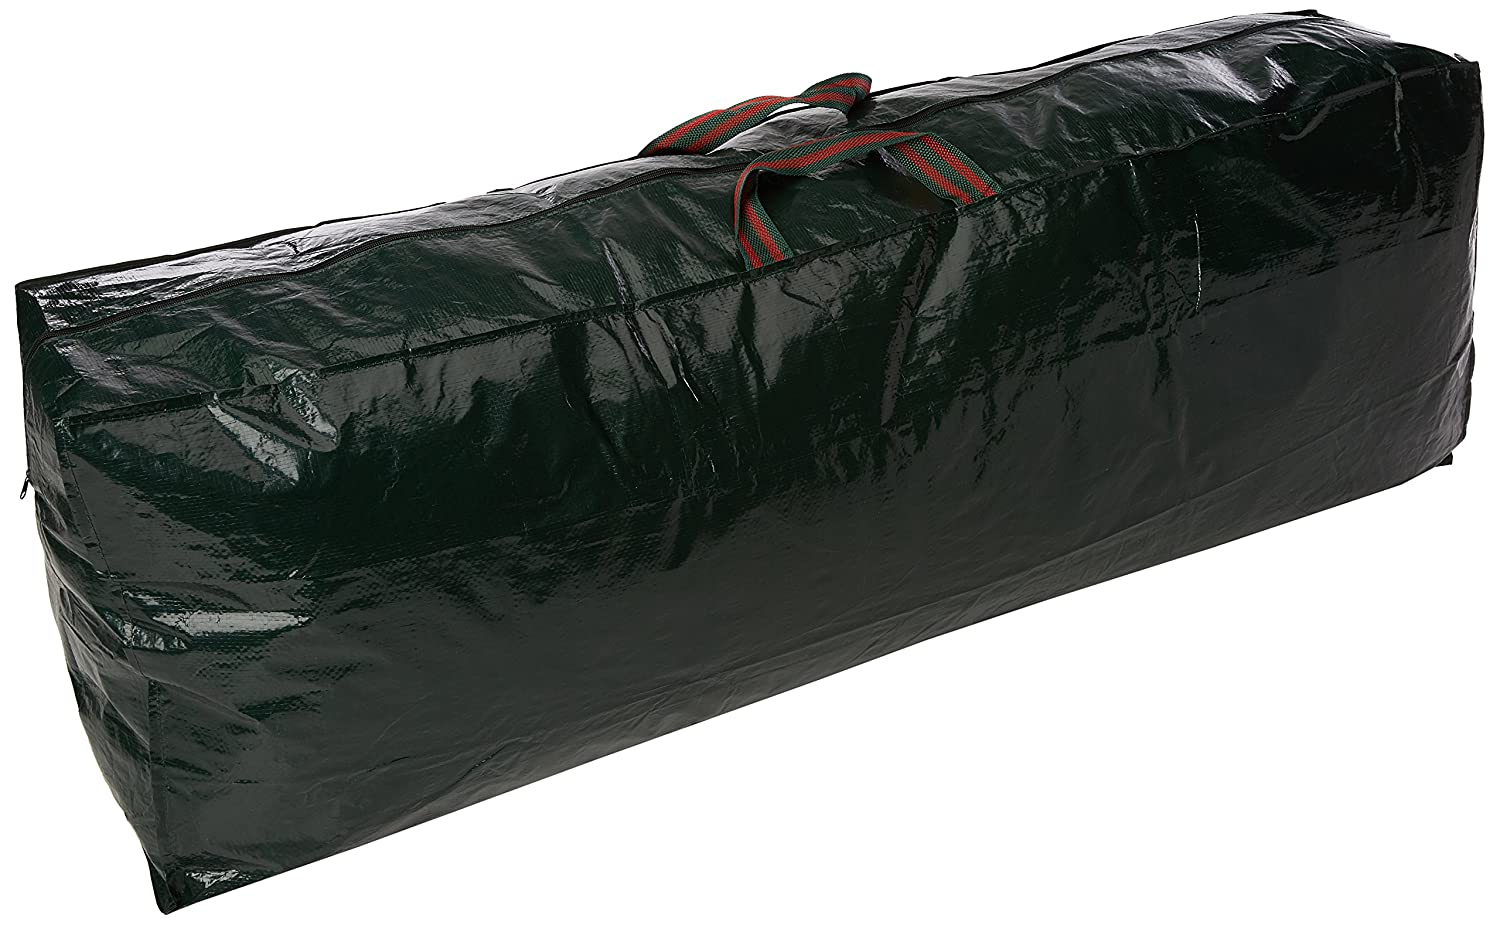 Christmas Tree Storage Bag.Qualtex Ebylme017 Christmas Tree Storage Bag Up To 7ft Tall Xmas Trees